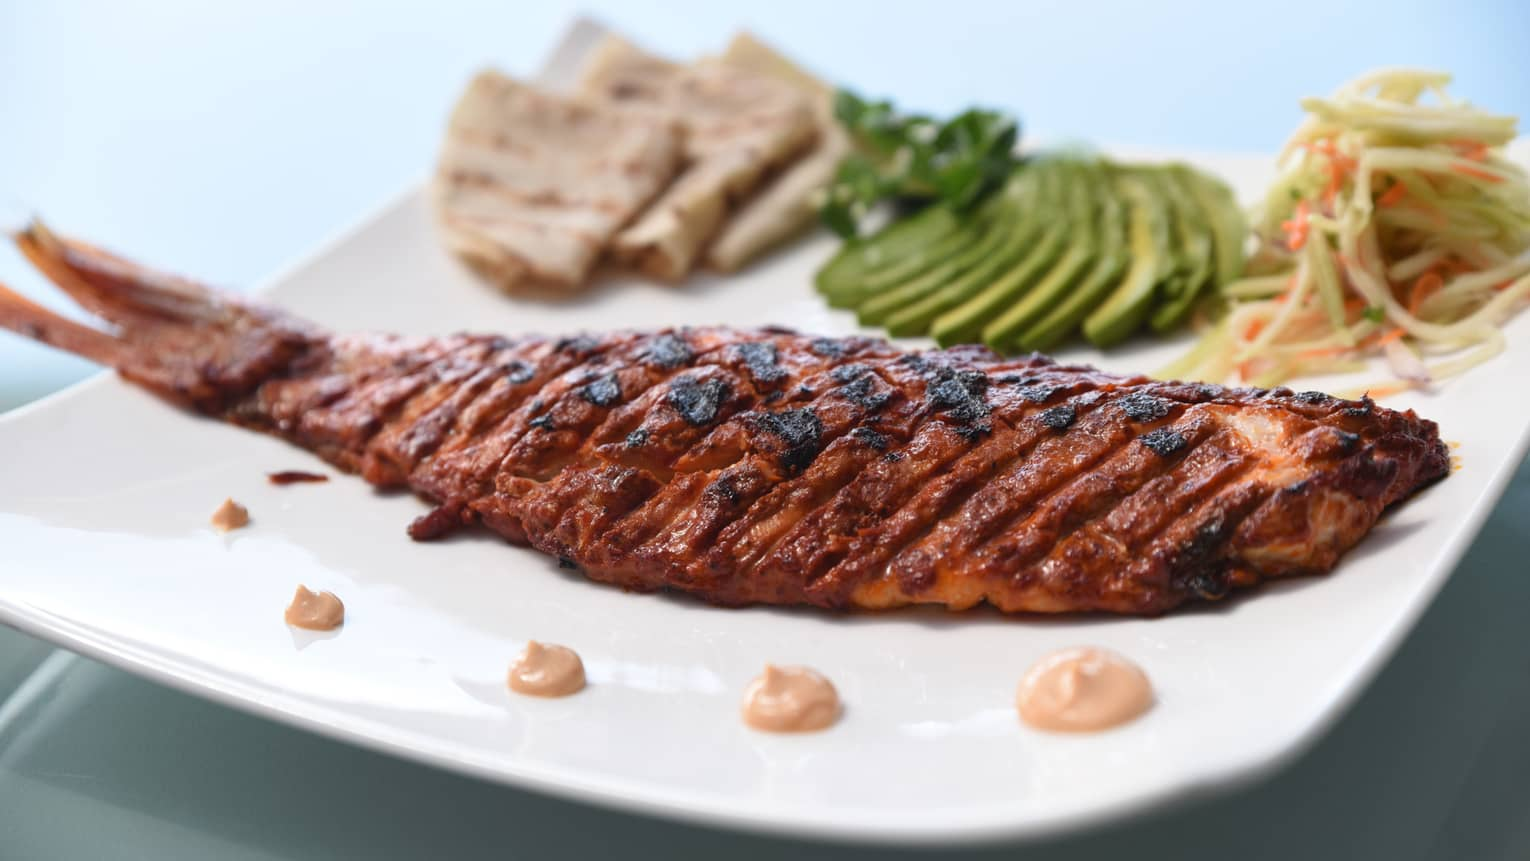 Barbecued fish on plate with sliced avocado, coleslaw, tortillas, dollops of sauce